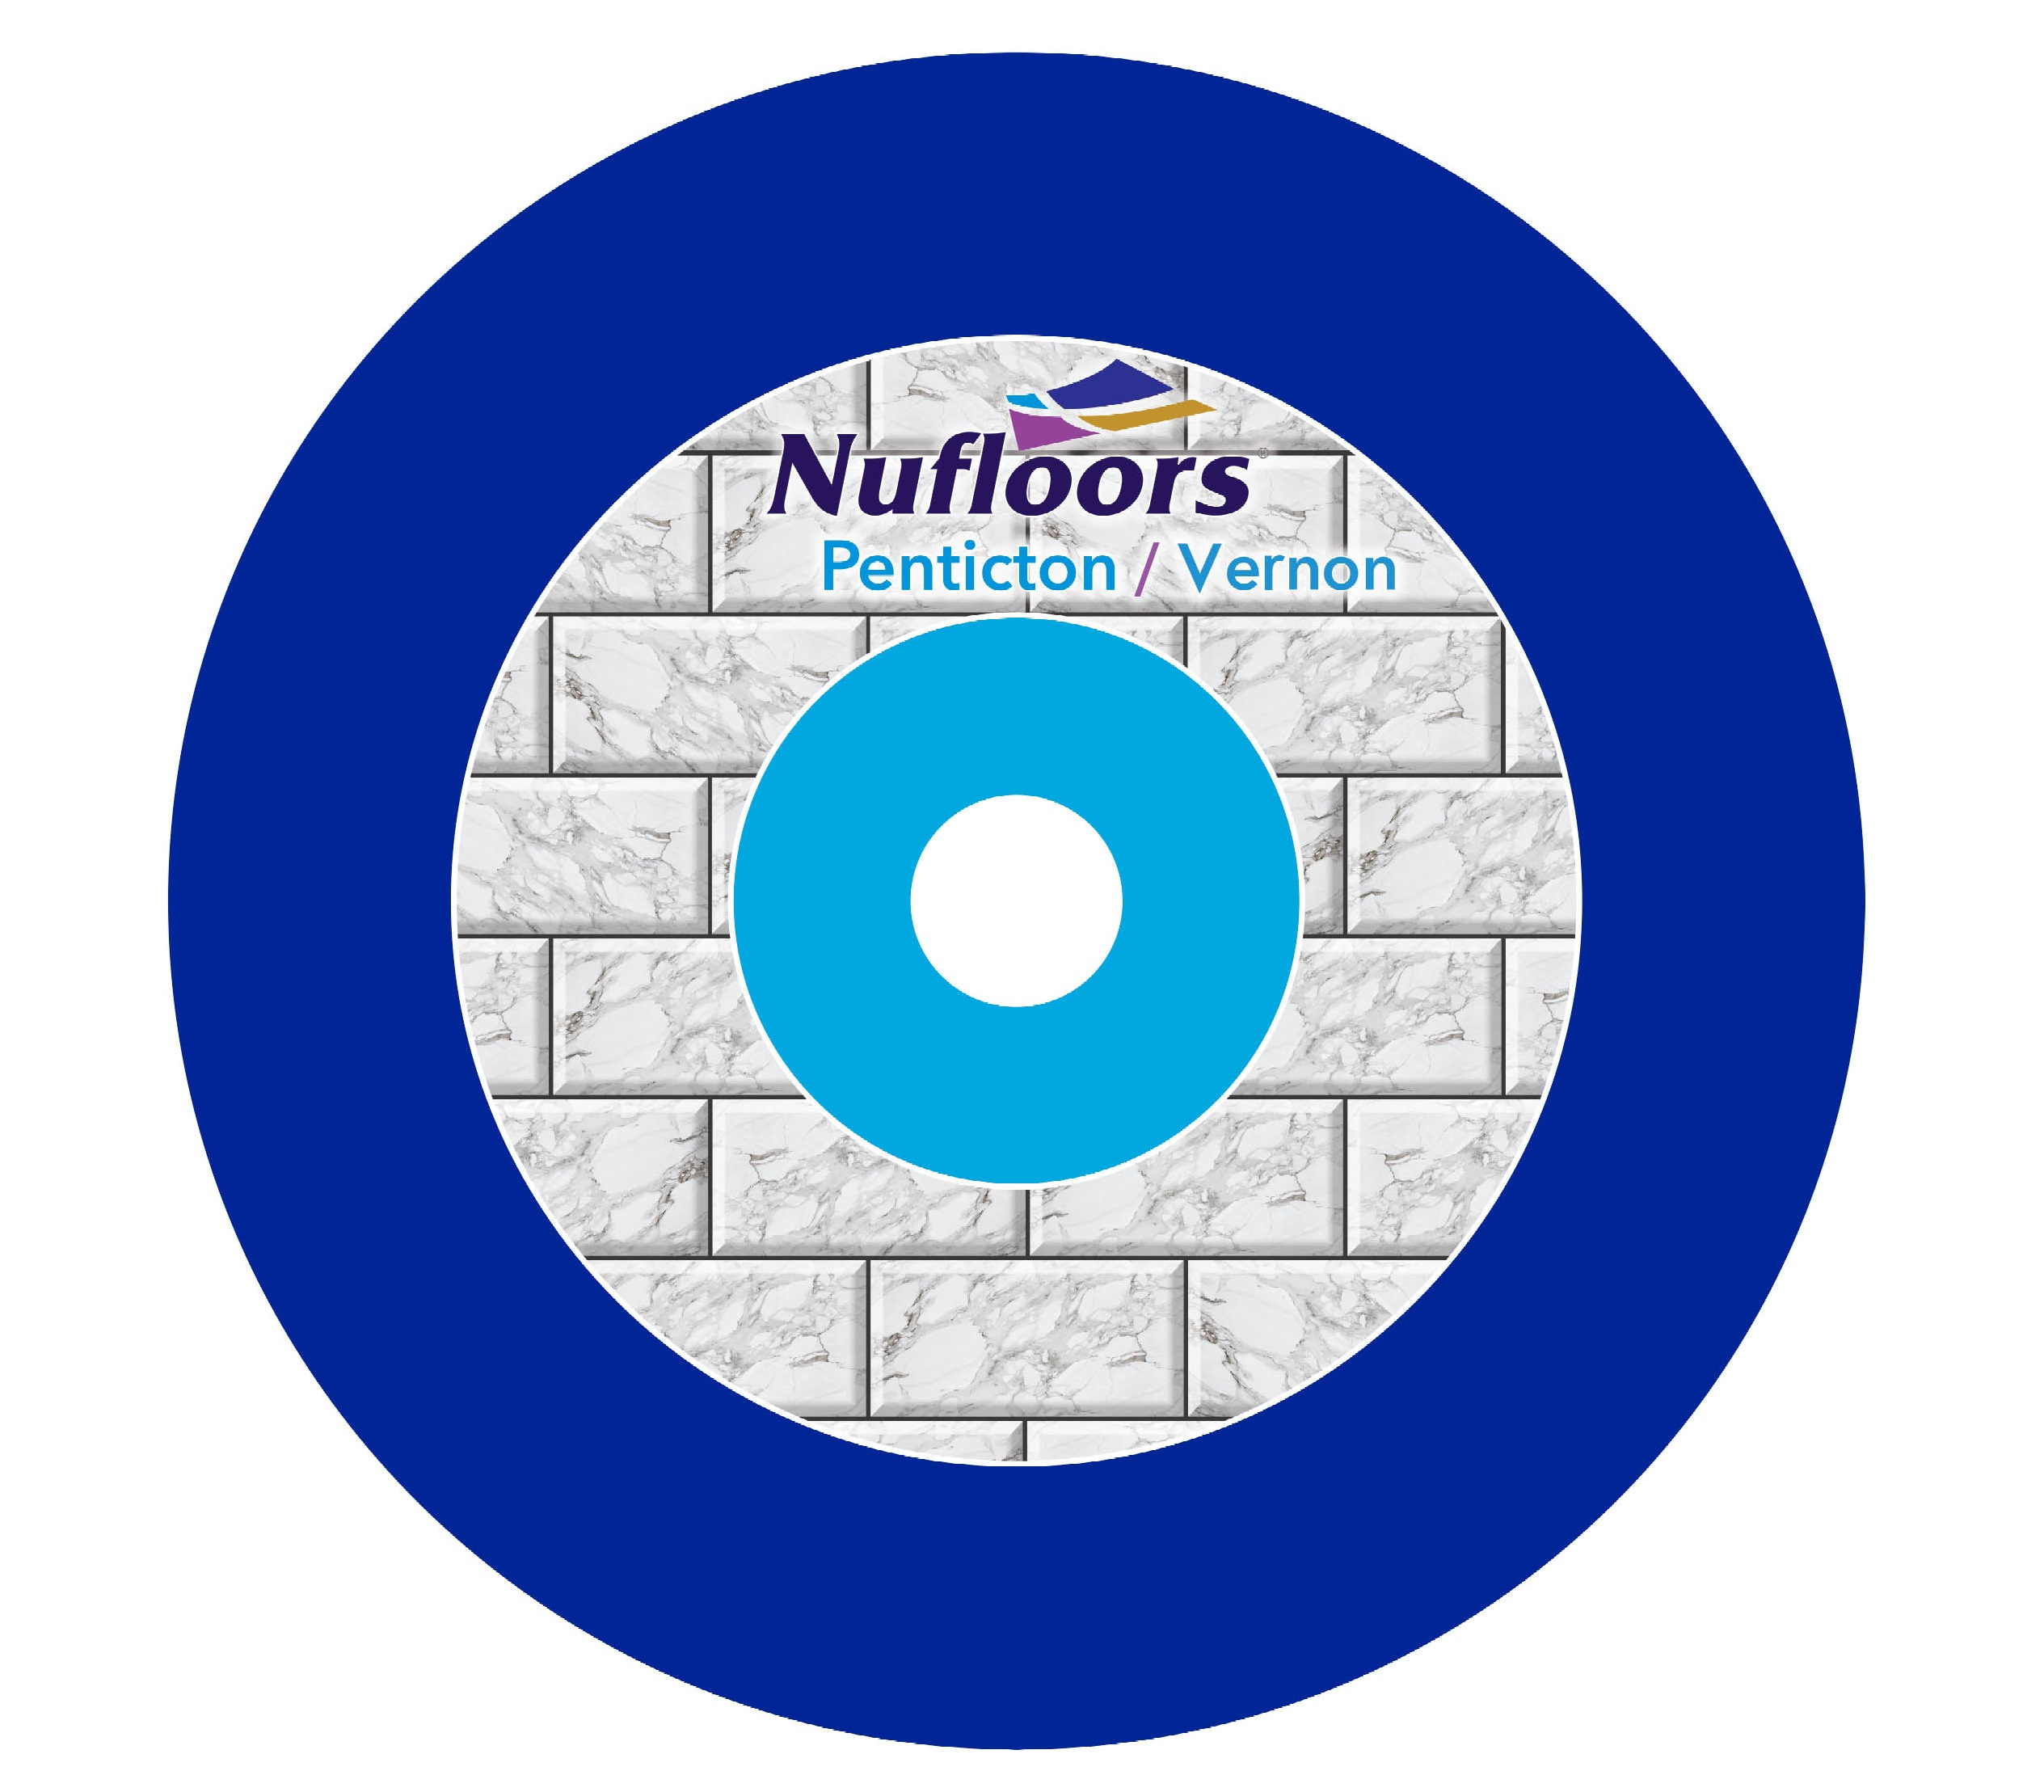 Vernon Curling Club - NuFloors  - FULL HOUSE - Layout - R1